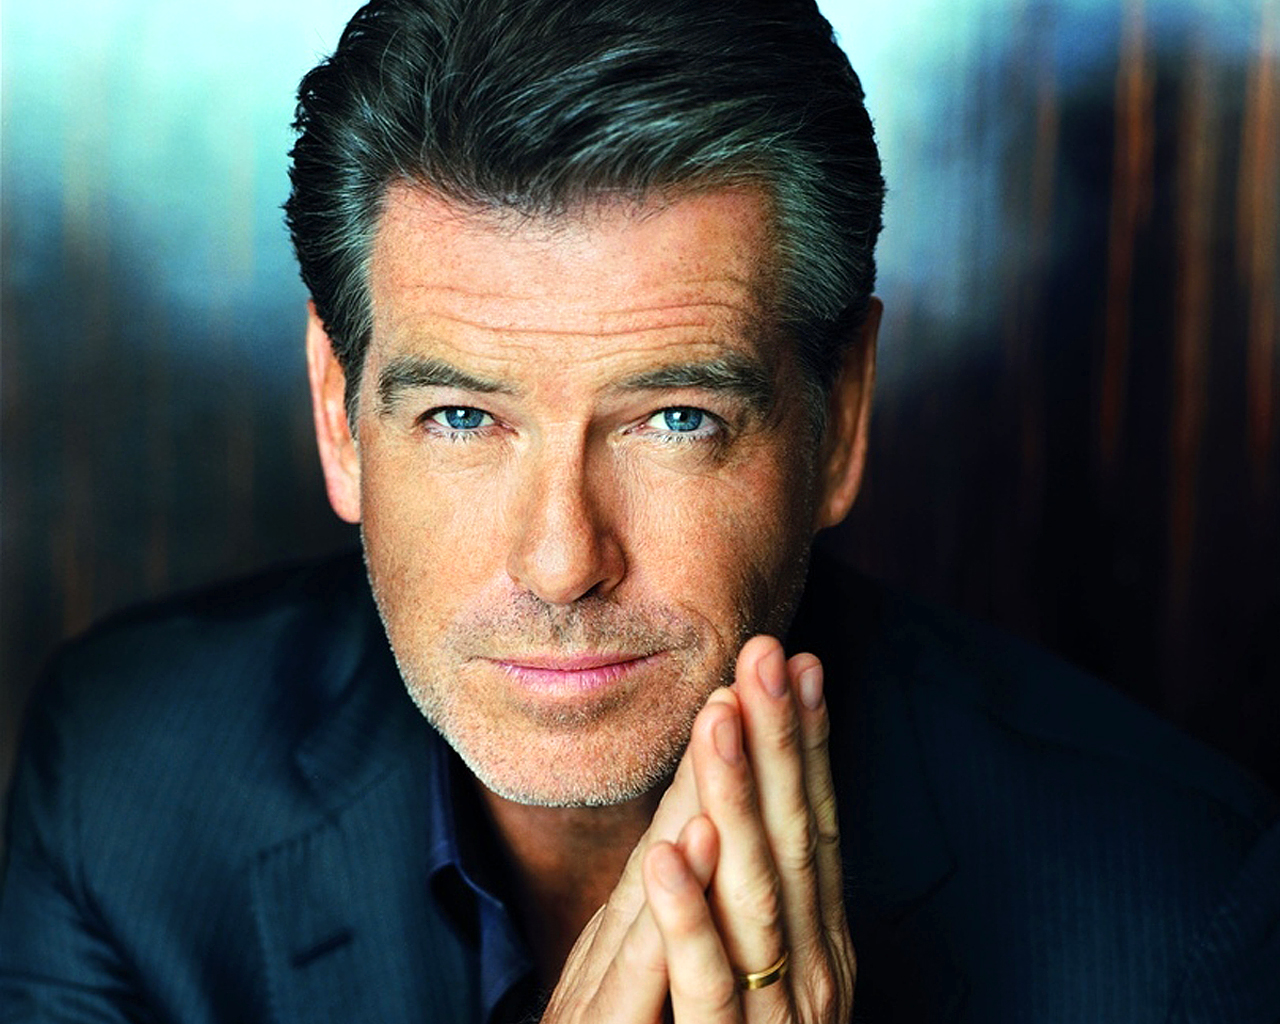 Pierce Brosnan; Pierce Brosnan ...